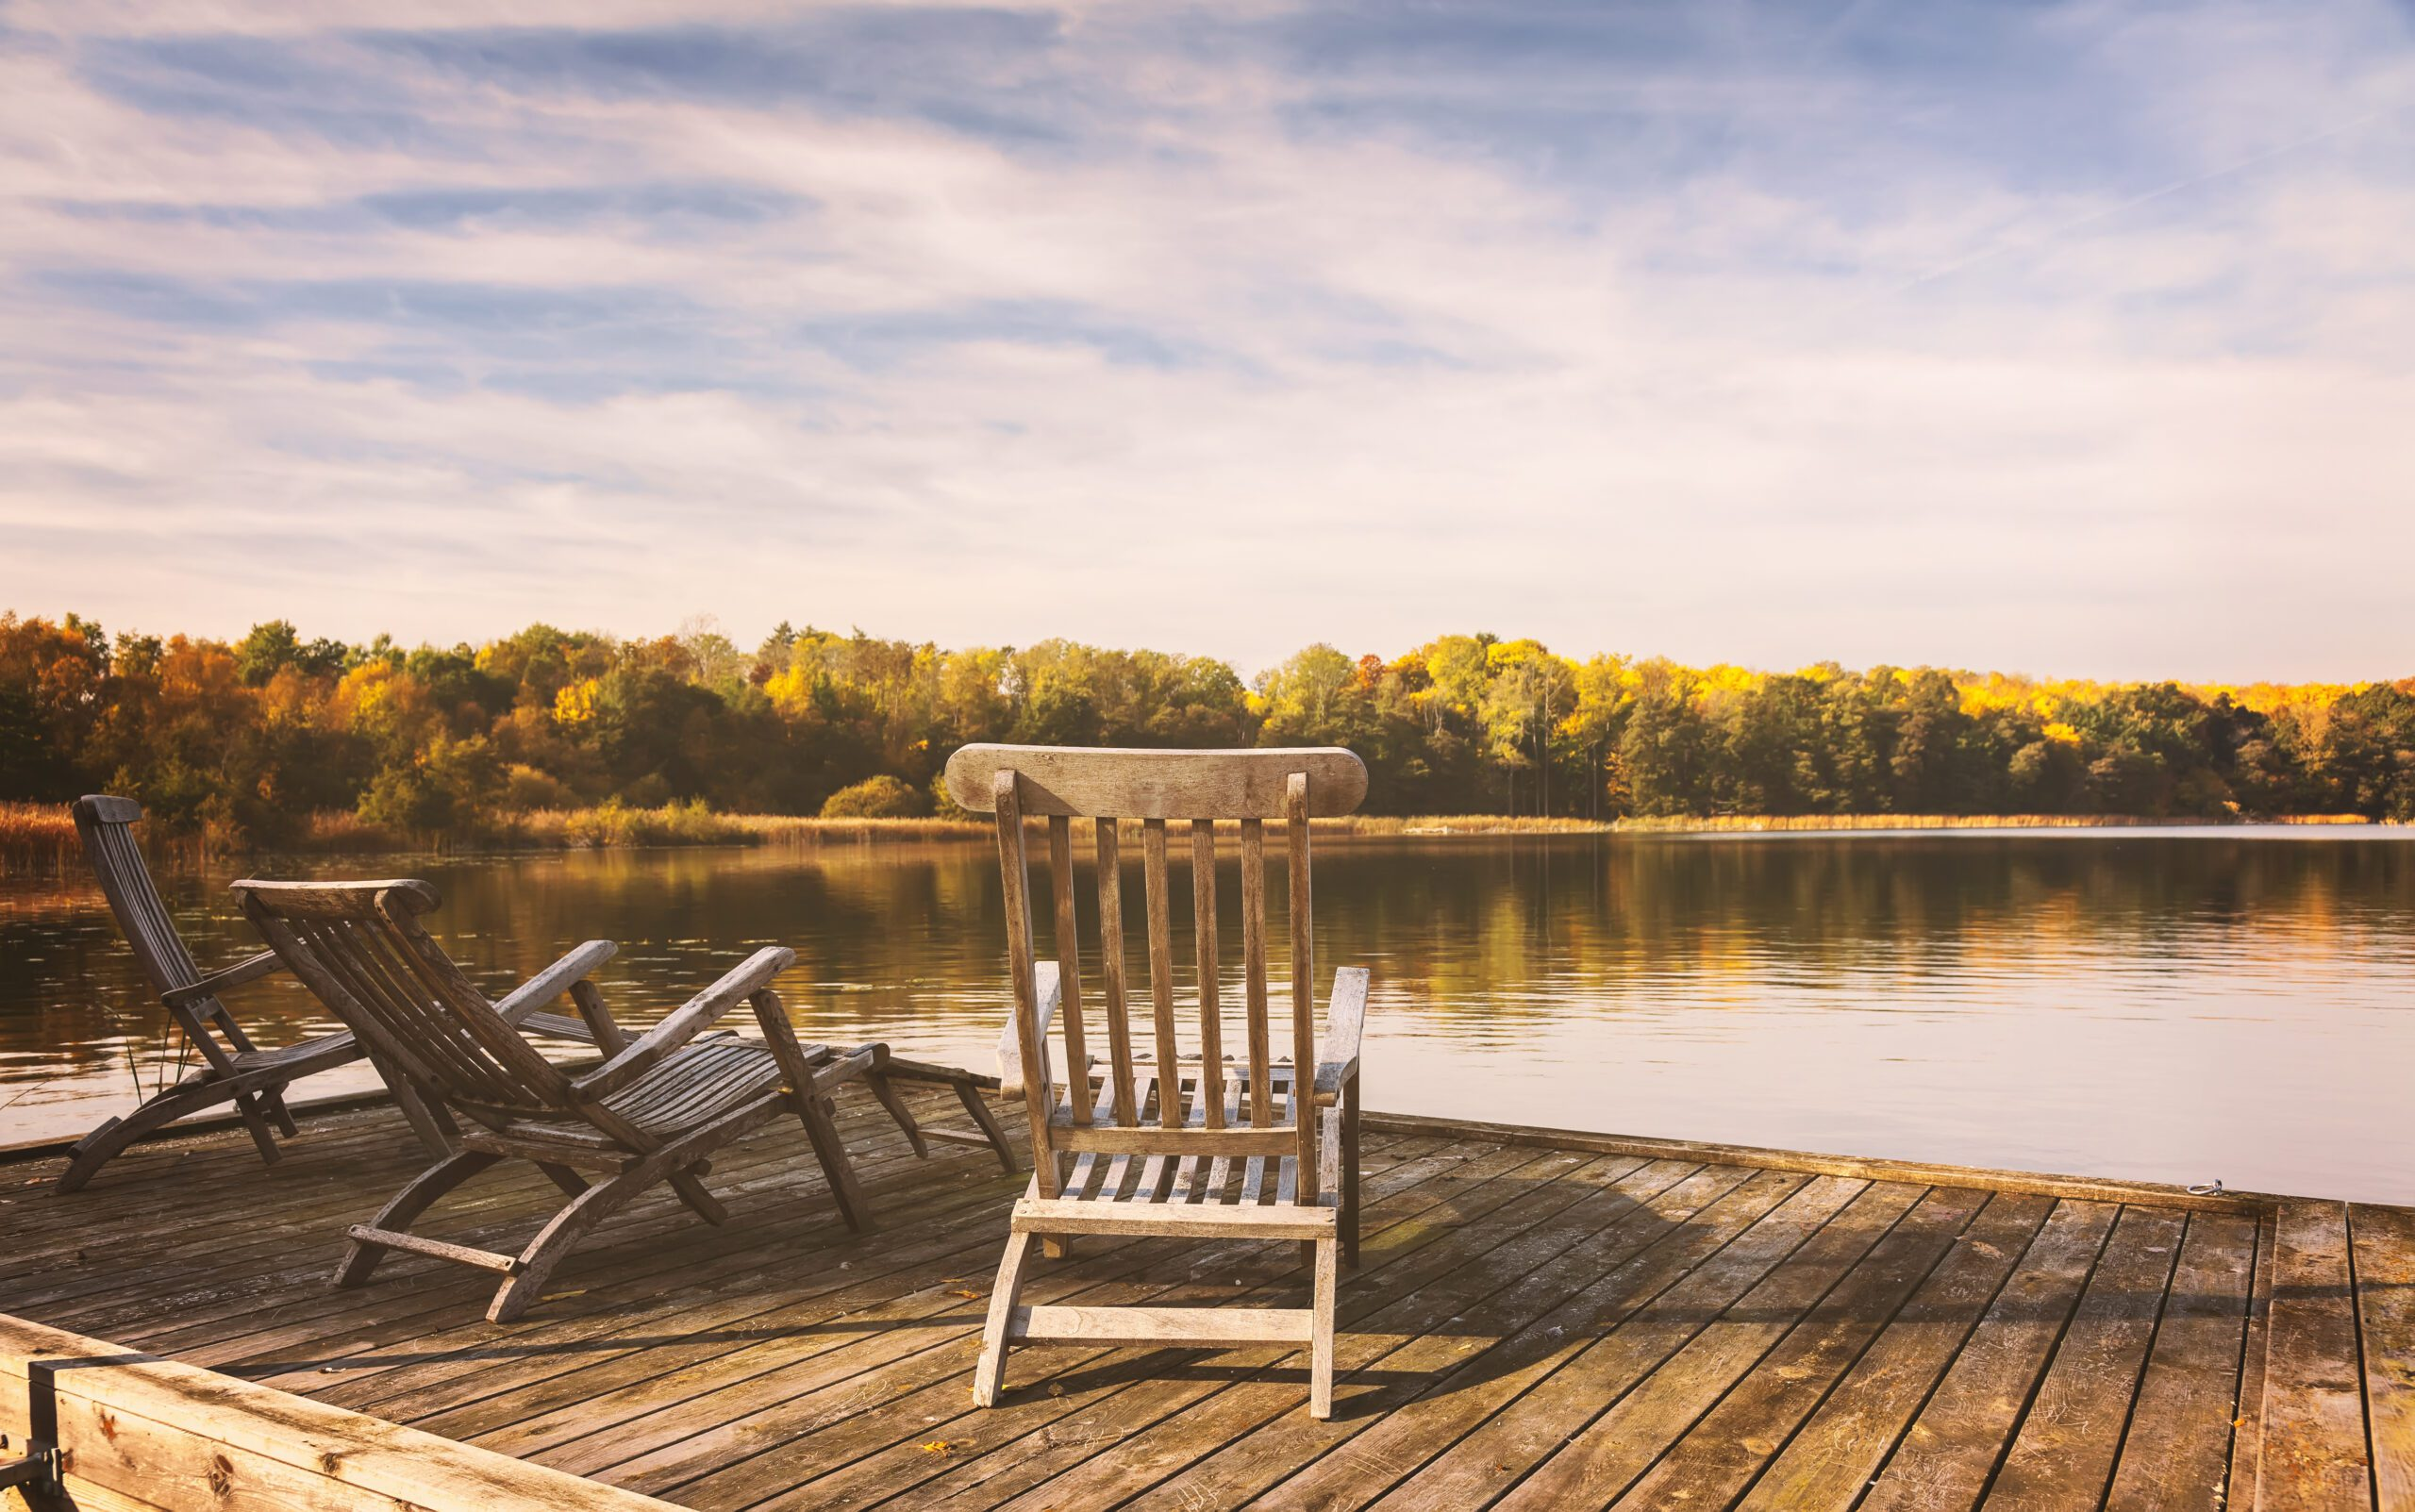 Two Chairs On A Dock Overlooking A Calm Lake